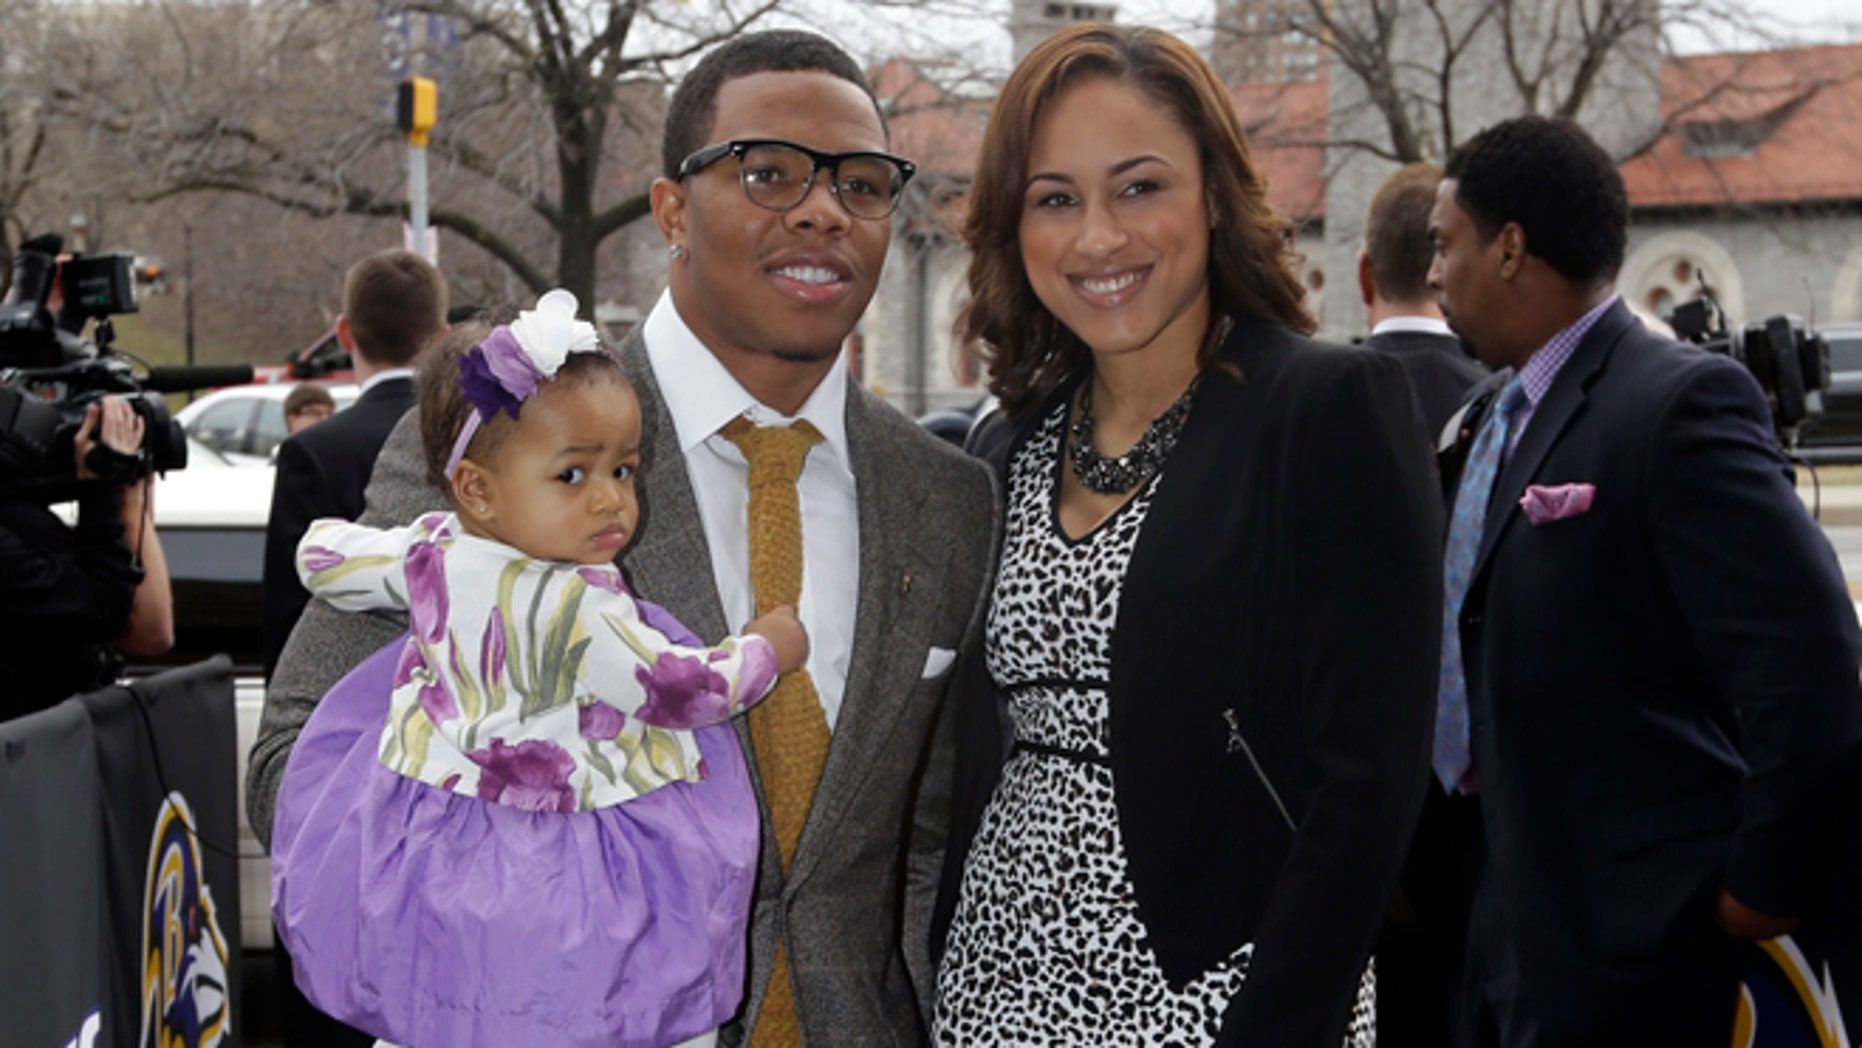 In this March 11, 2013 file photo, Baltimore Ravens running back Ray Rice, left, poses with his daughter, Rayven, and Janay Palmer as they arrive for a screening of a new film released on DVD that chronicles the team's championship NFL football season in Baltimore. Police in Atlantic City say Ray Rice and his fiance, Janay Palmer, were released on Saturday, Feb. 15, 2014, after they were arrested when an argument turned physical at the Revel Casino.